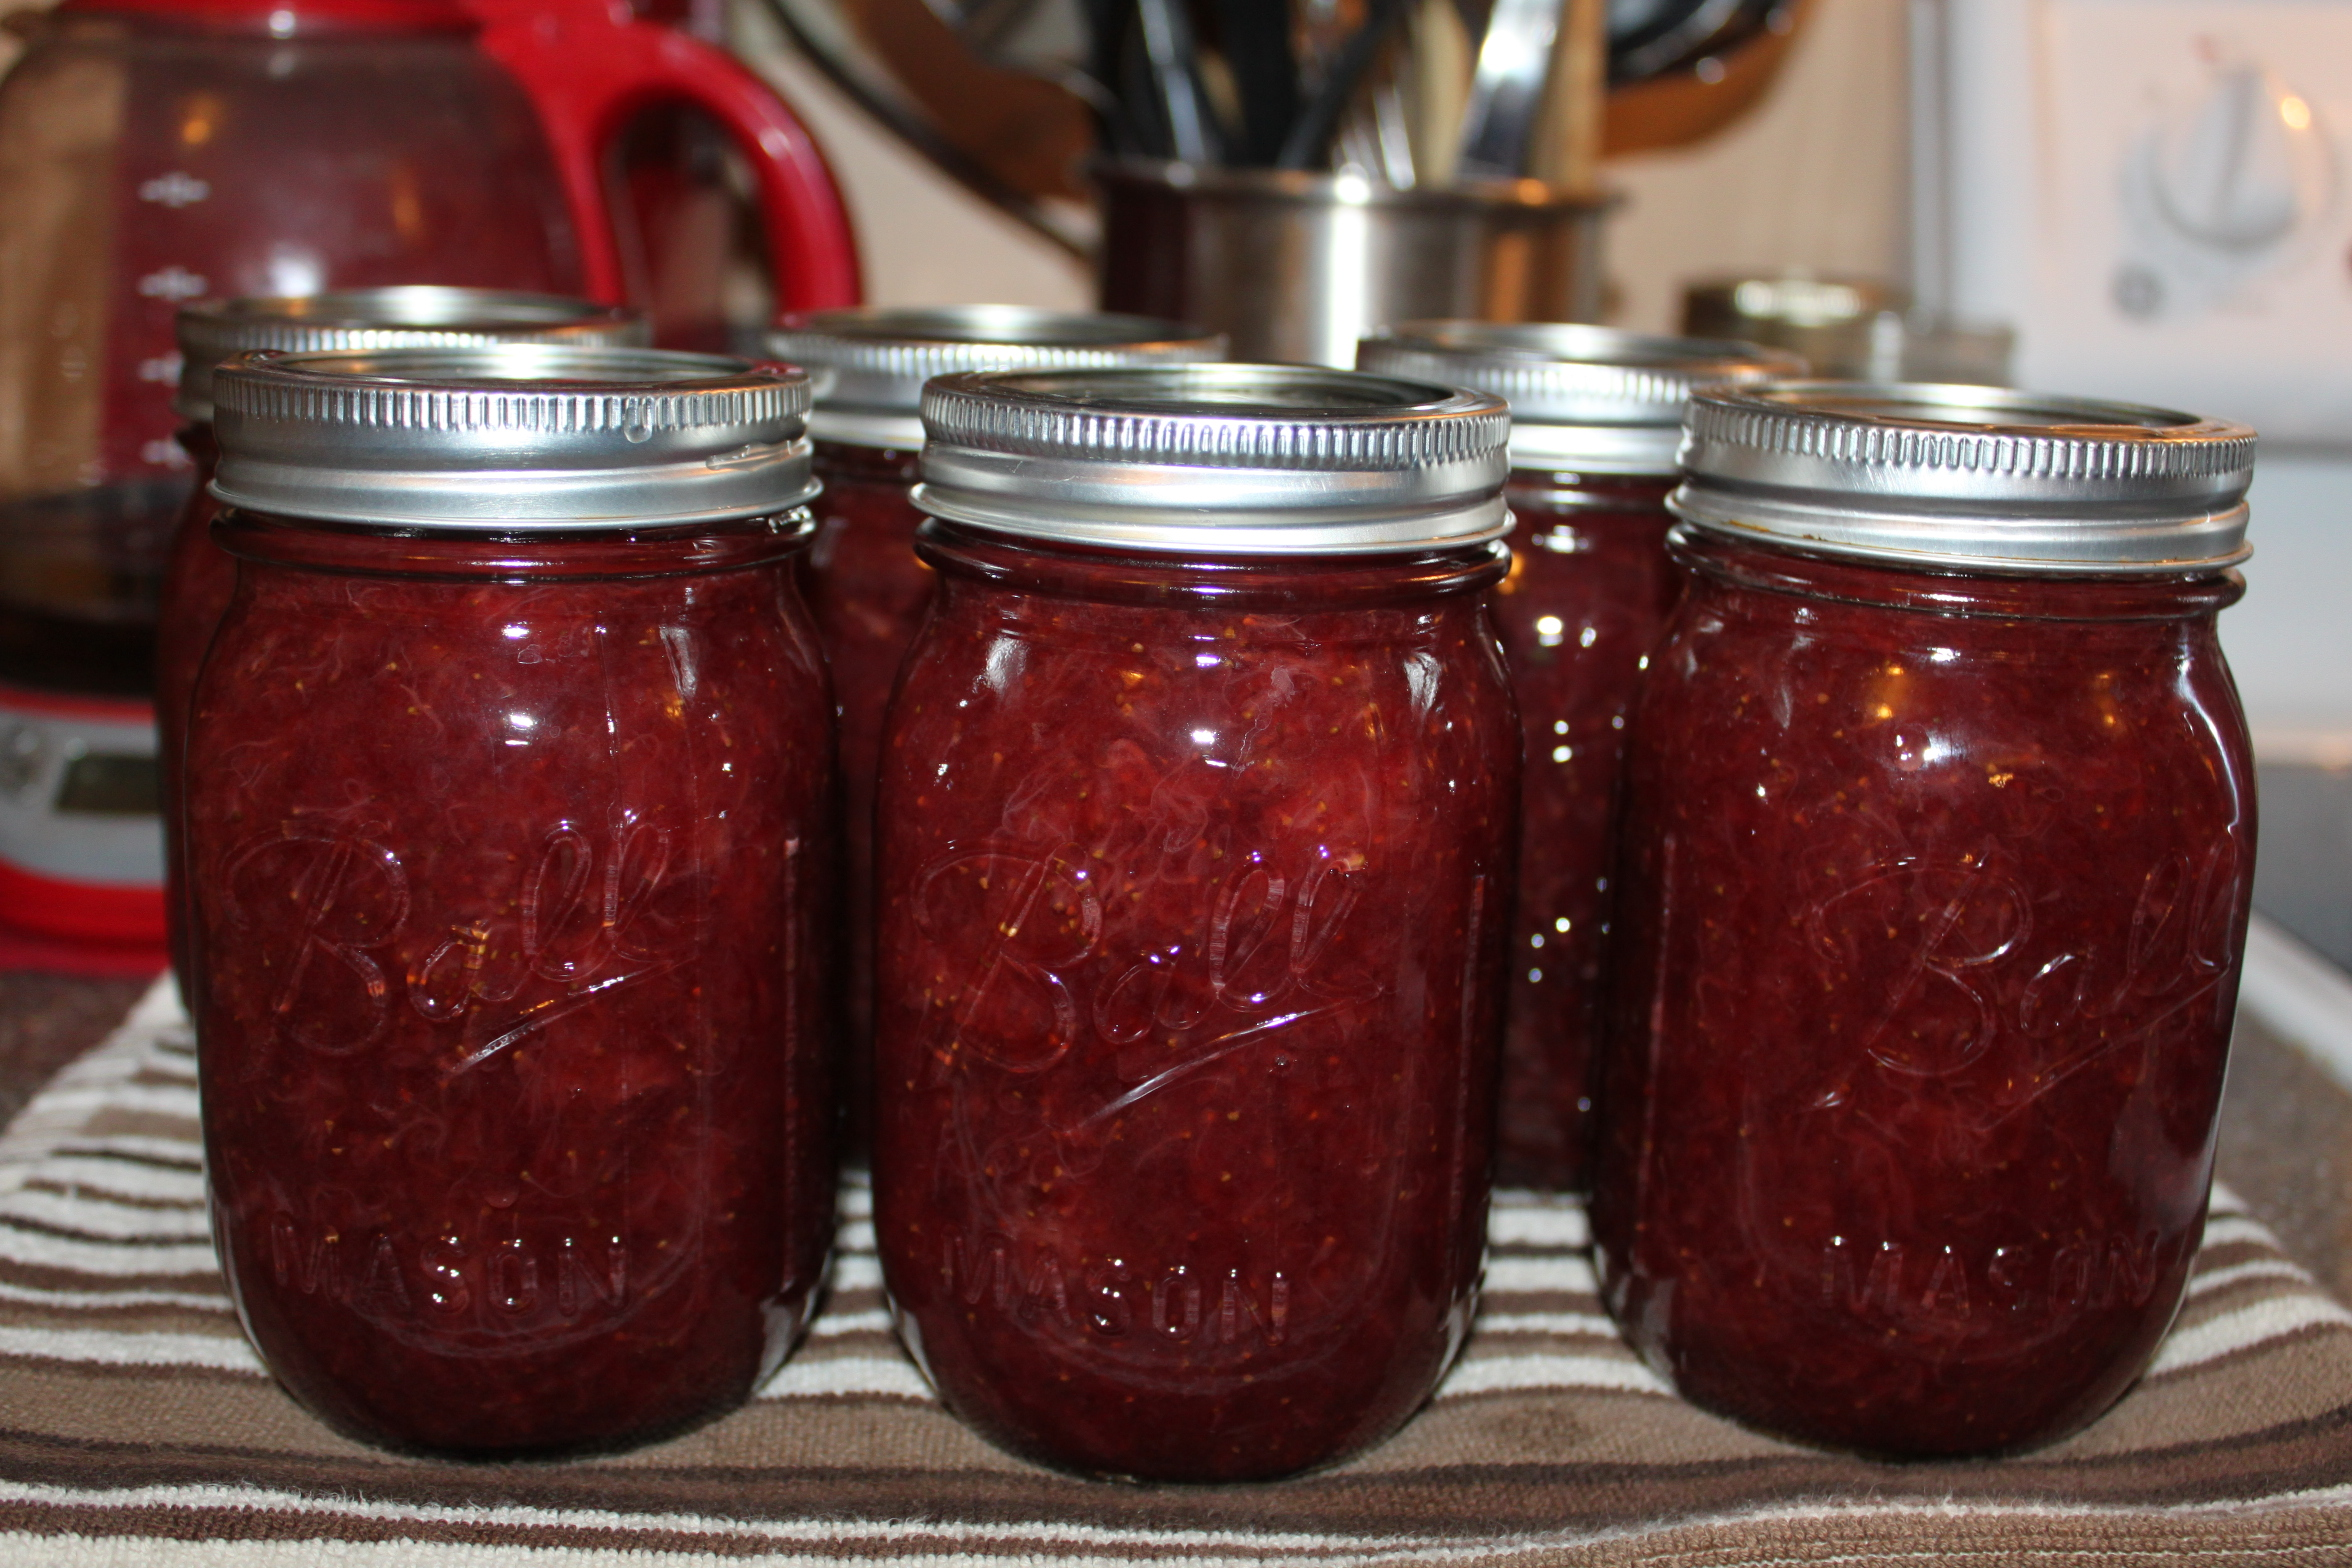 Strawberry Honey Jam Recipe – Just 4 Natural Ingredients With No Sugar Or Pectin